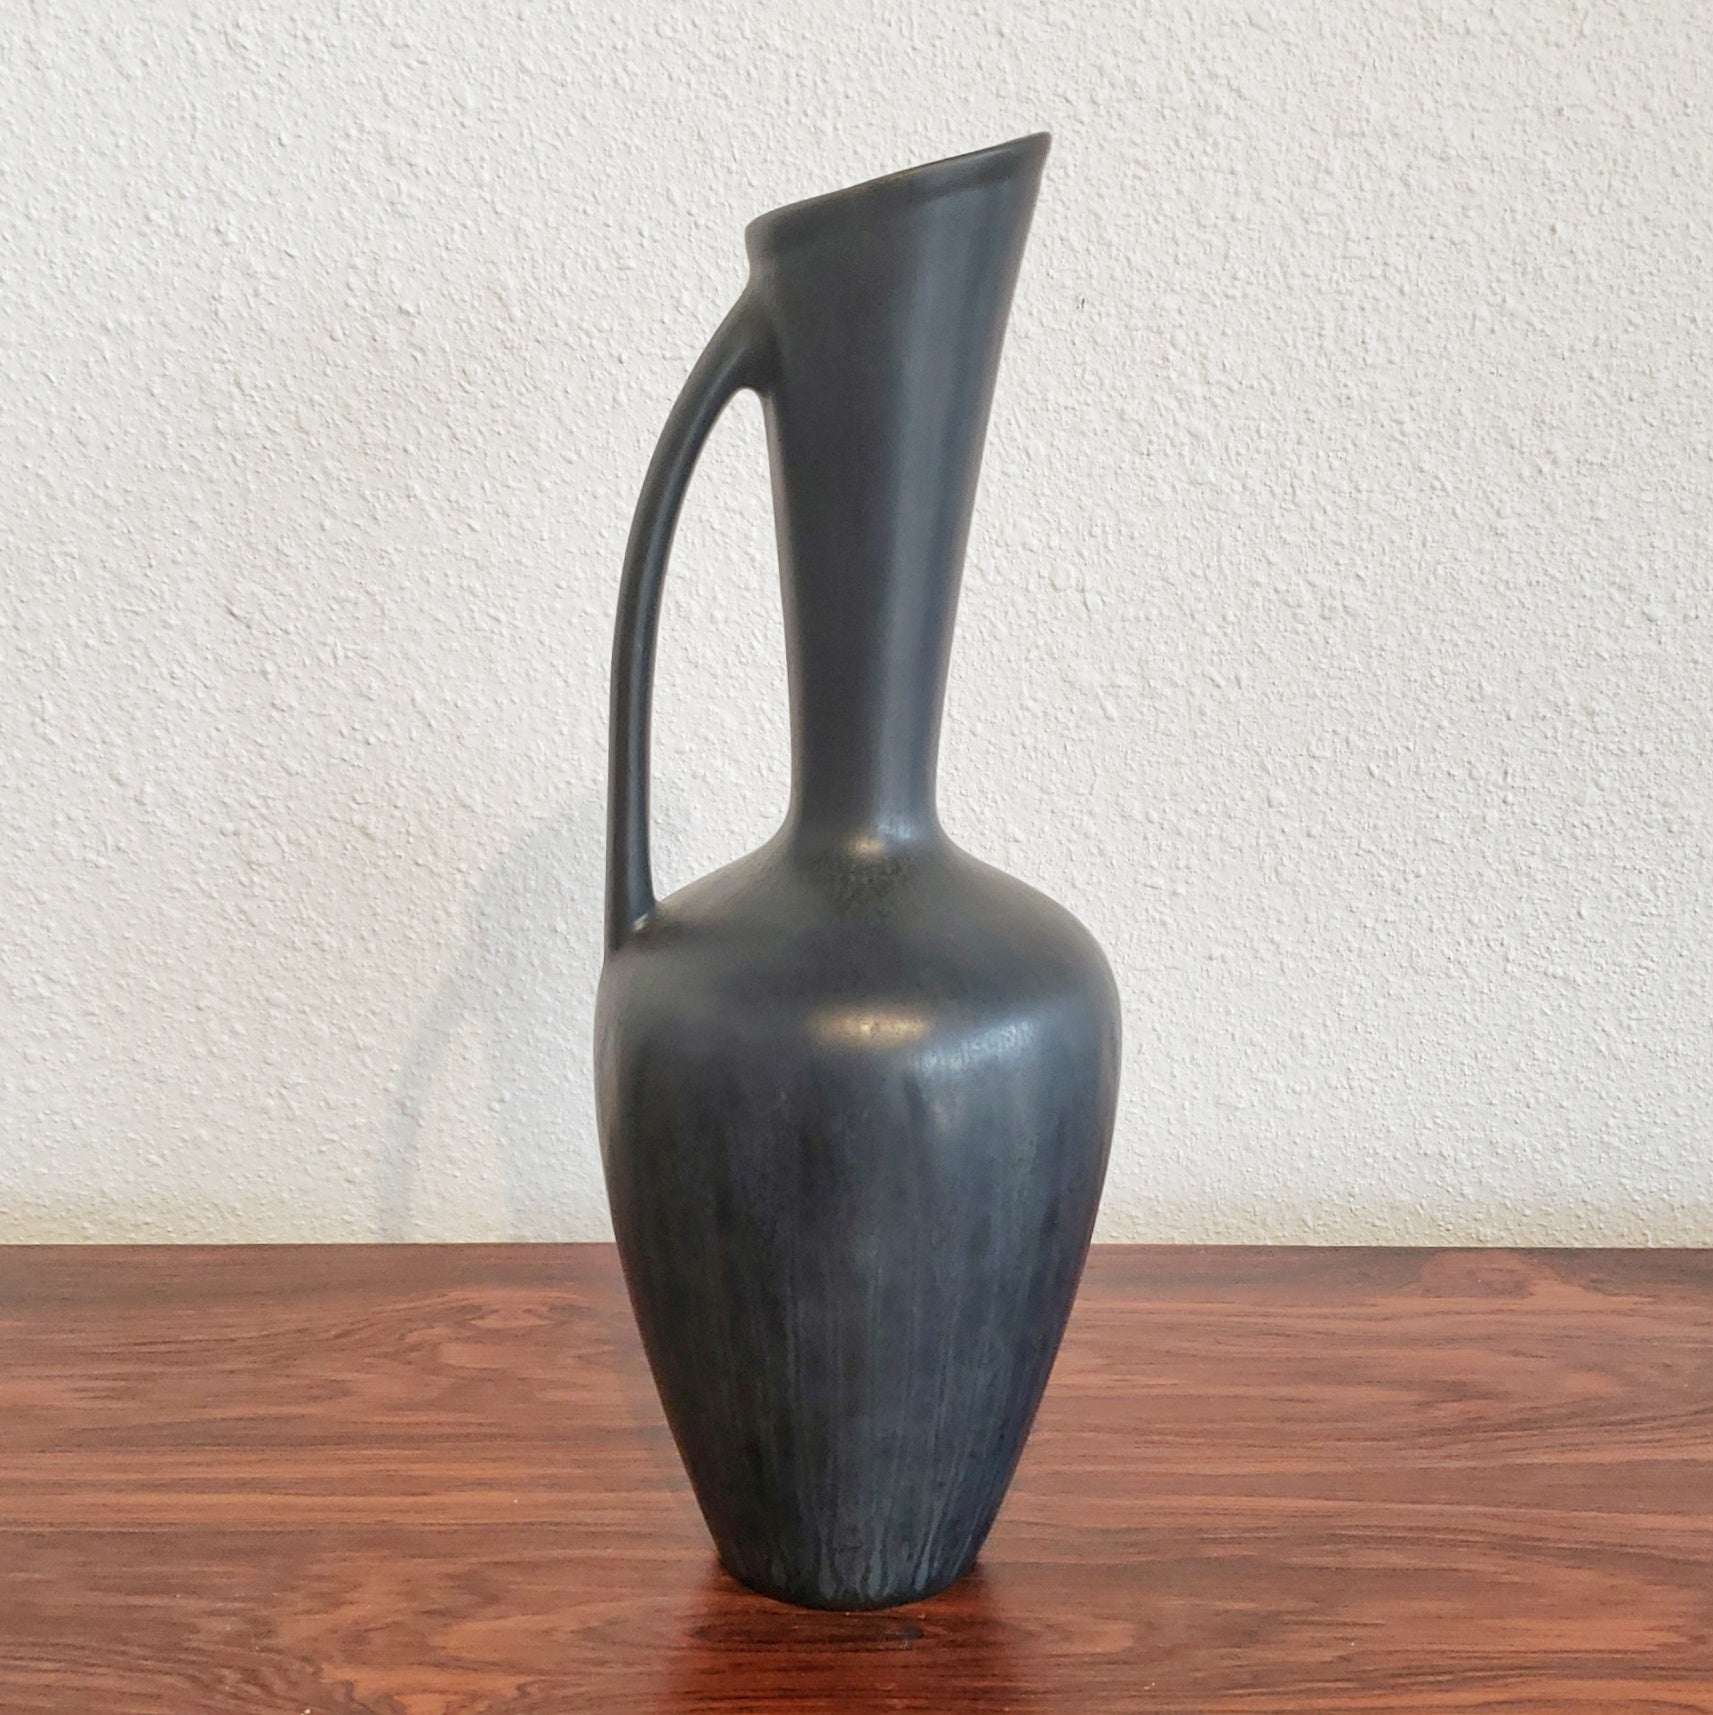 GUNNAR NYLUND VASE MODEL 'AXQ' FOR RÖRSTRAND (27.5 cm)